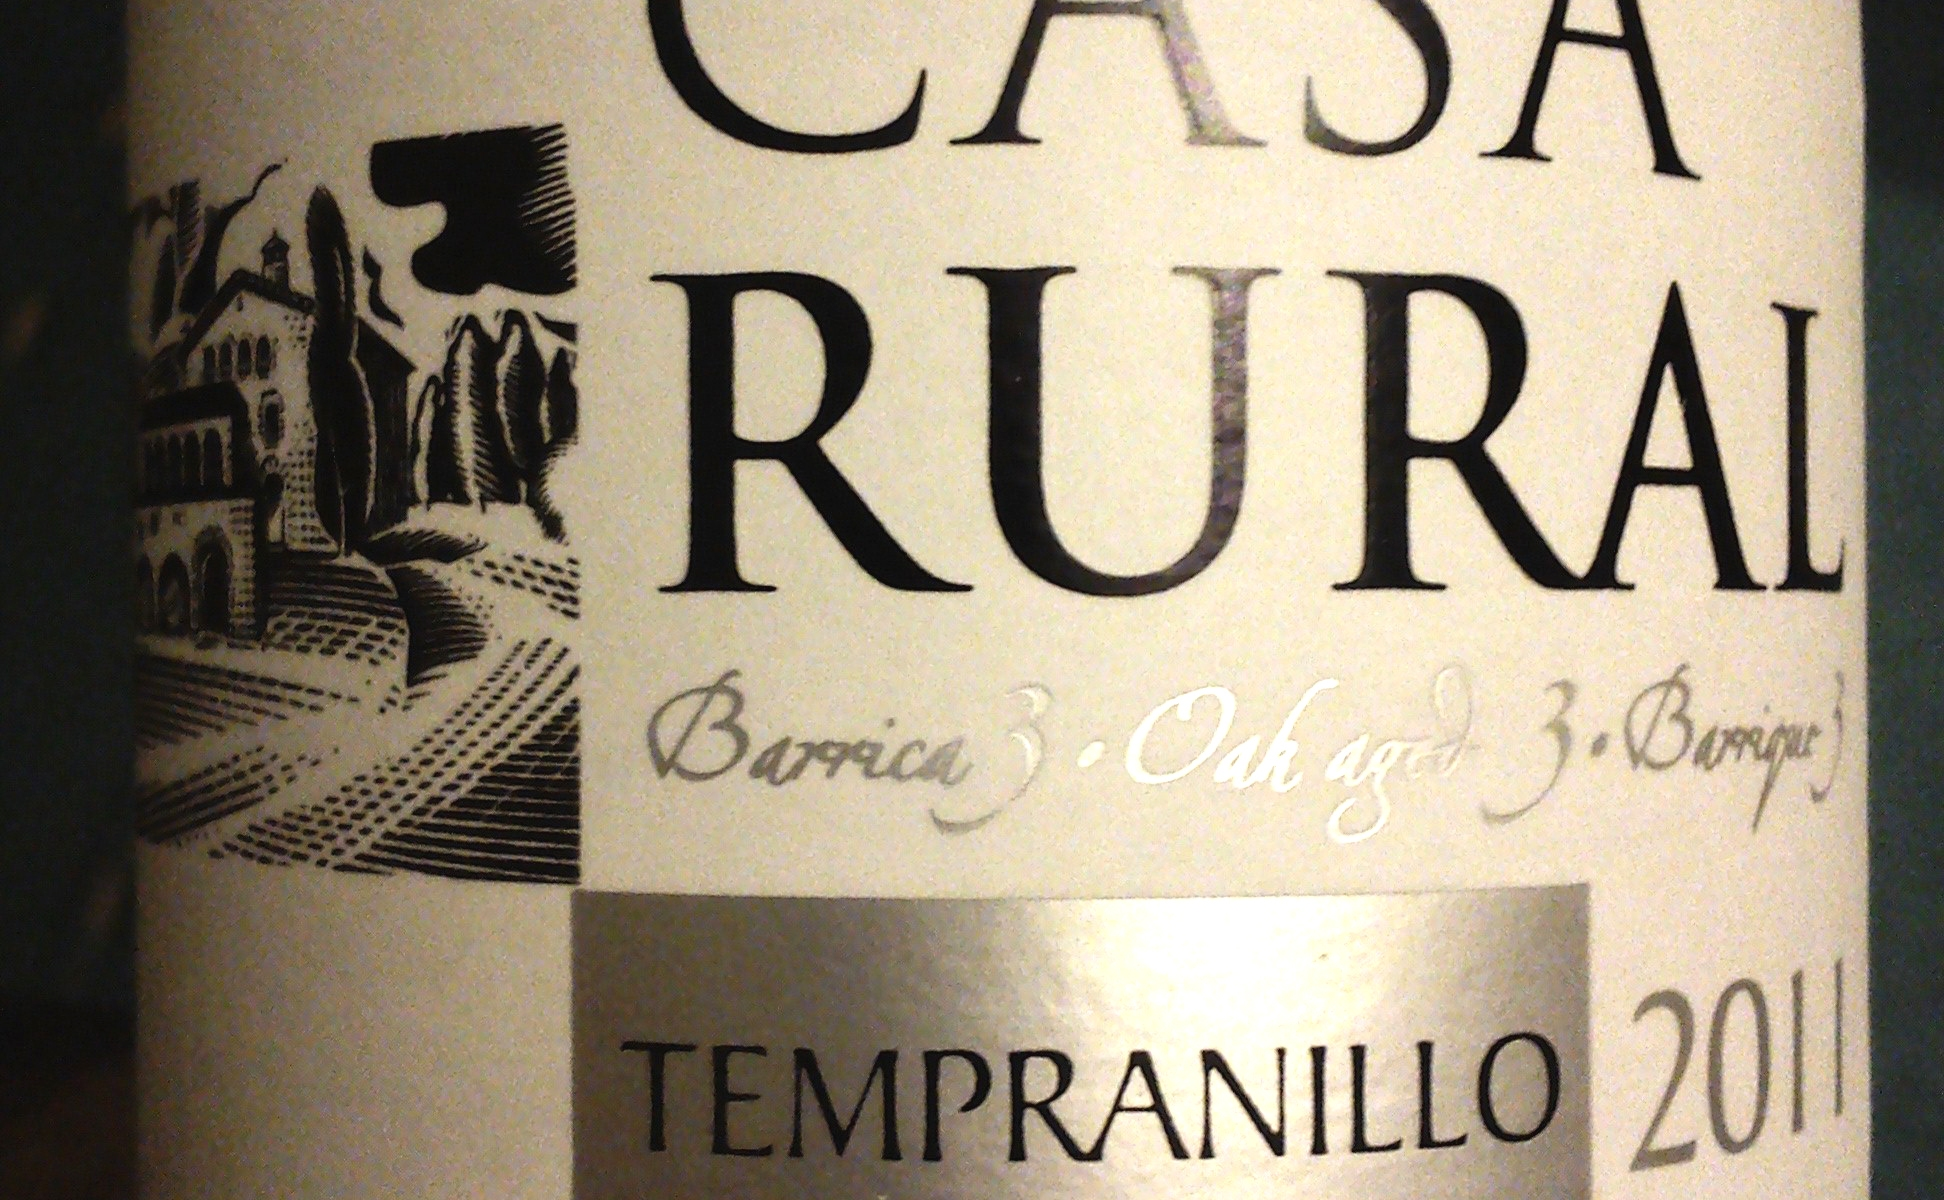 Casa Rural Tempranillo 2011